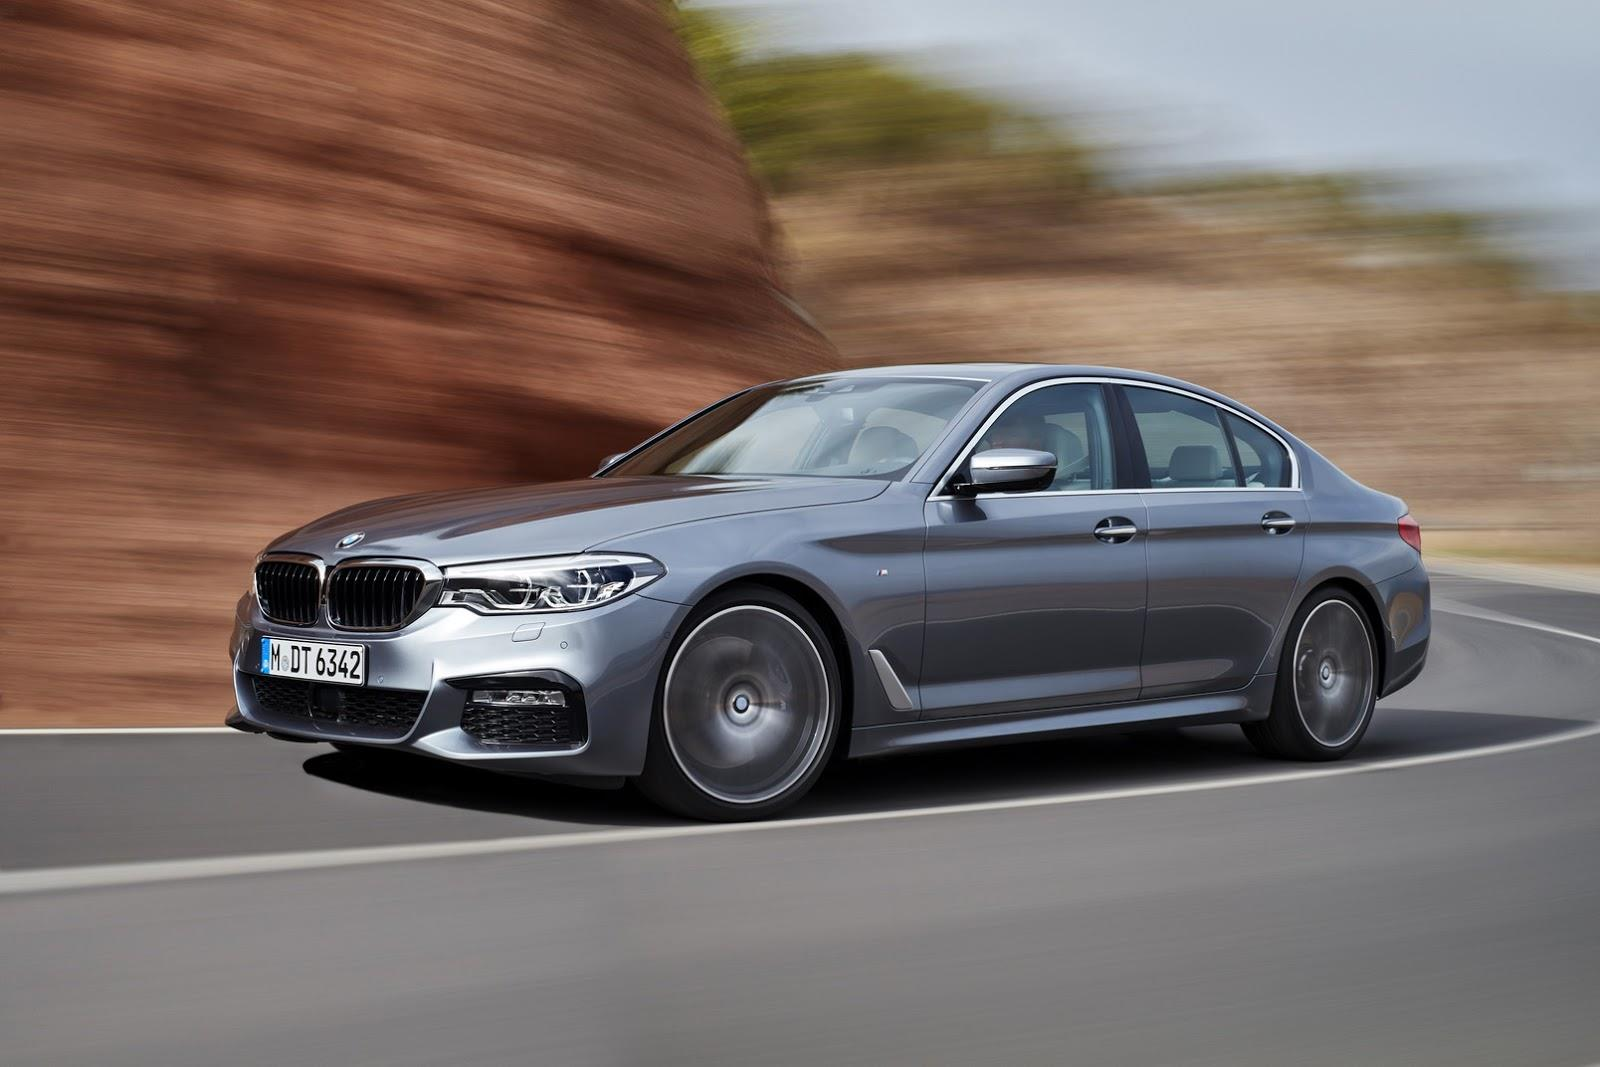 2017 BMW 5-series image gallery